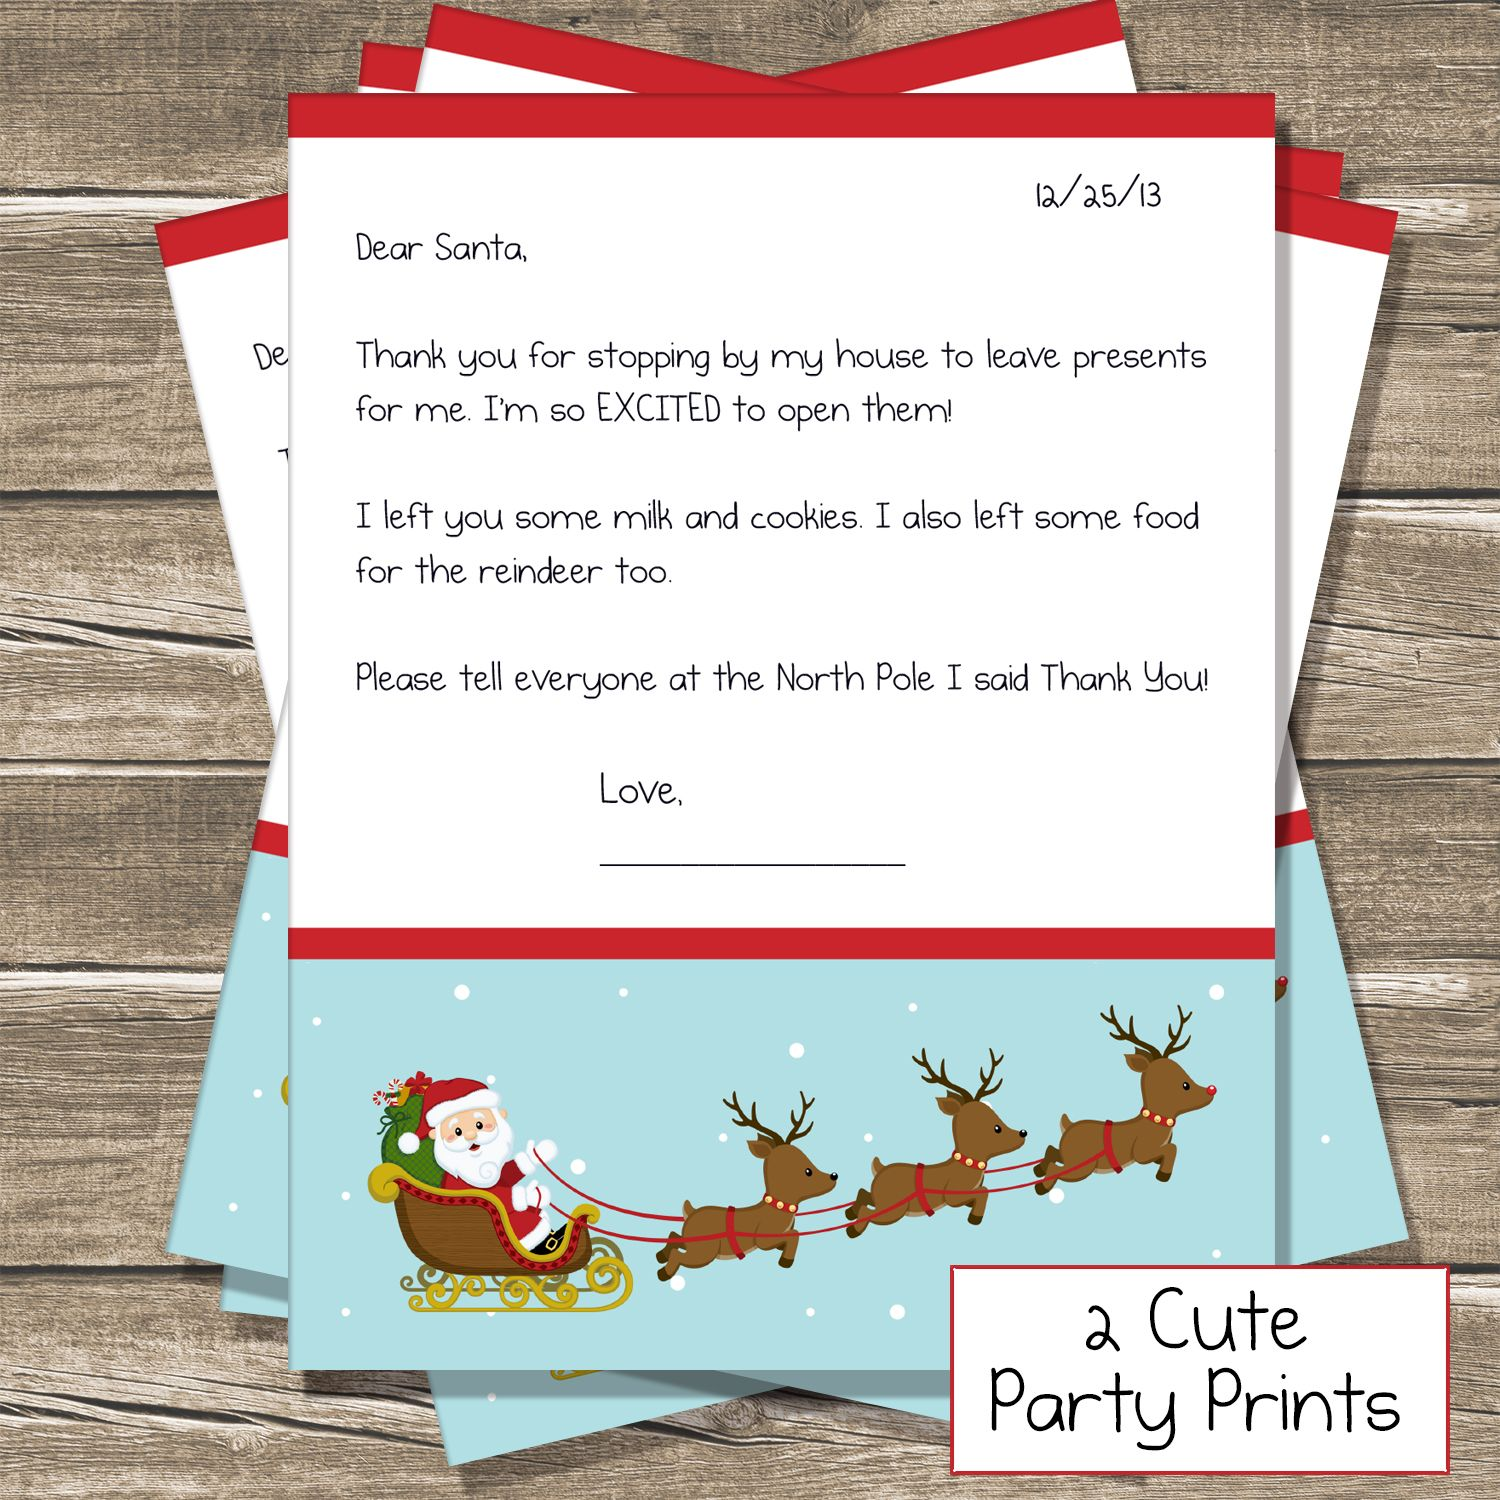 Today on the blog I have a cute little letter the kids can leave for ...